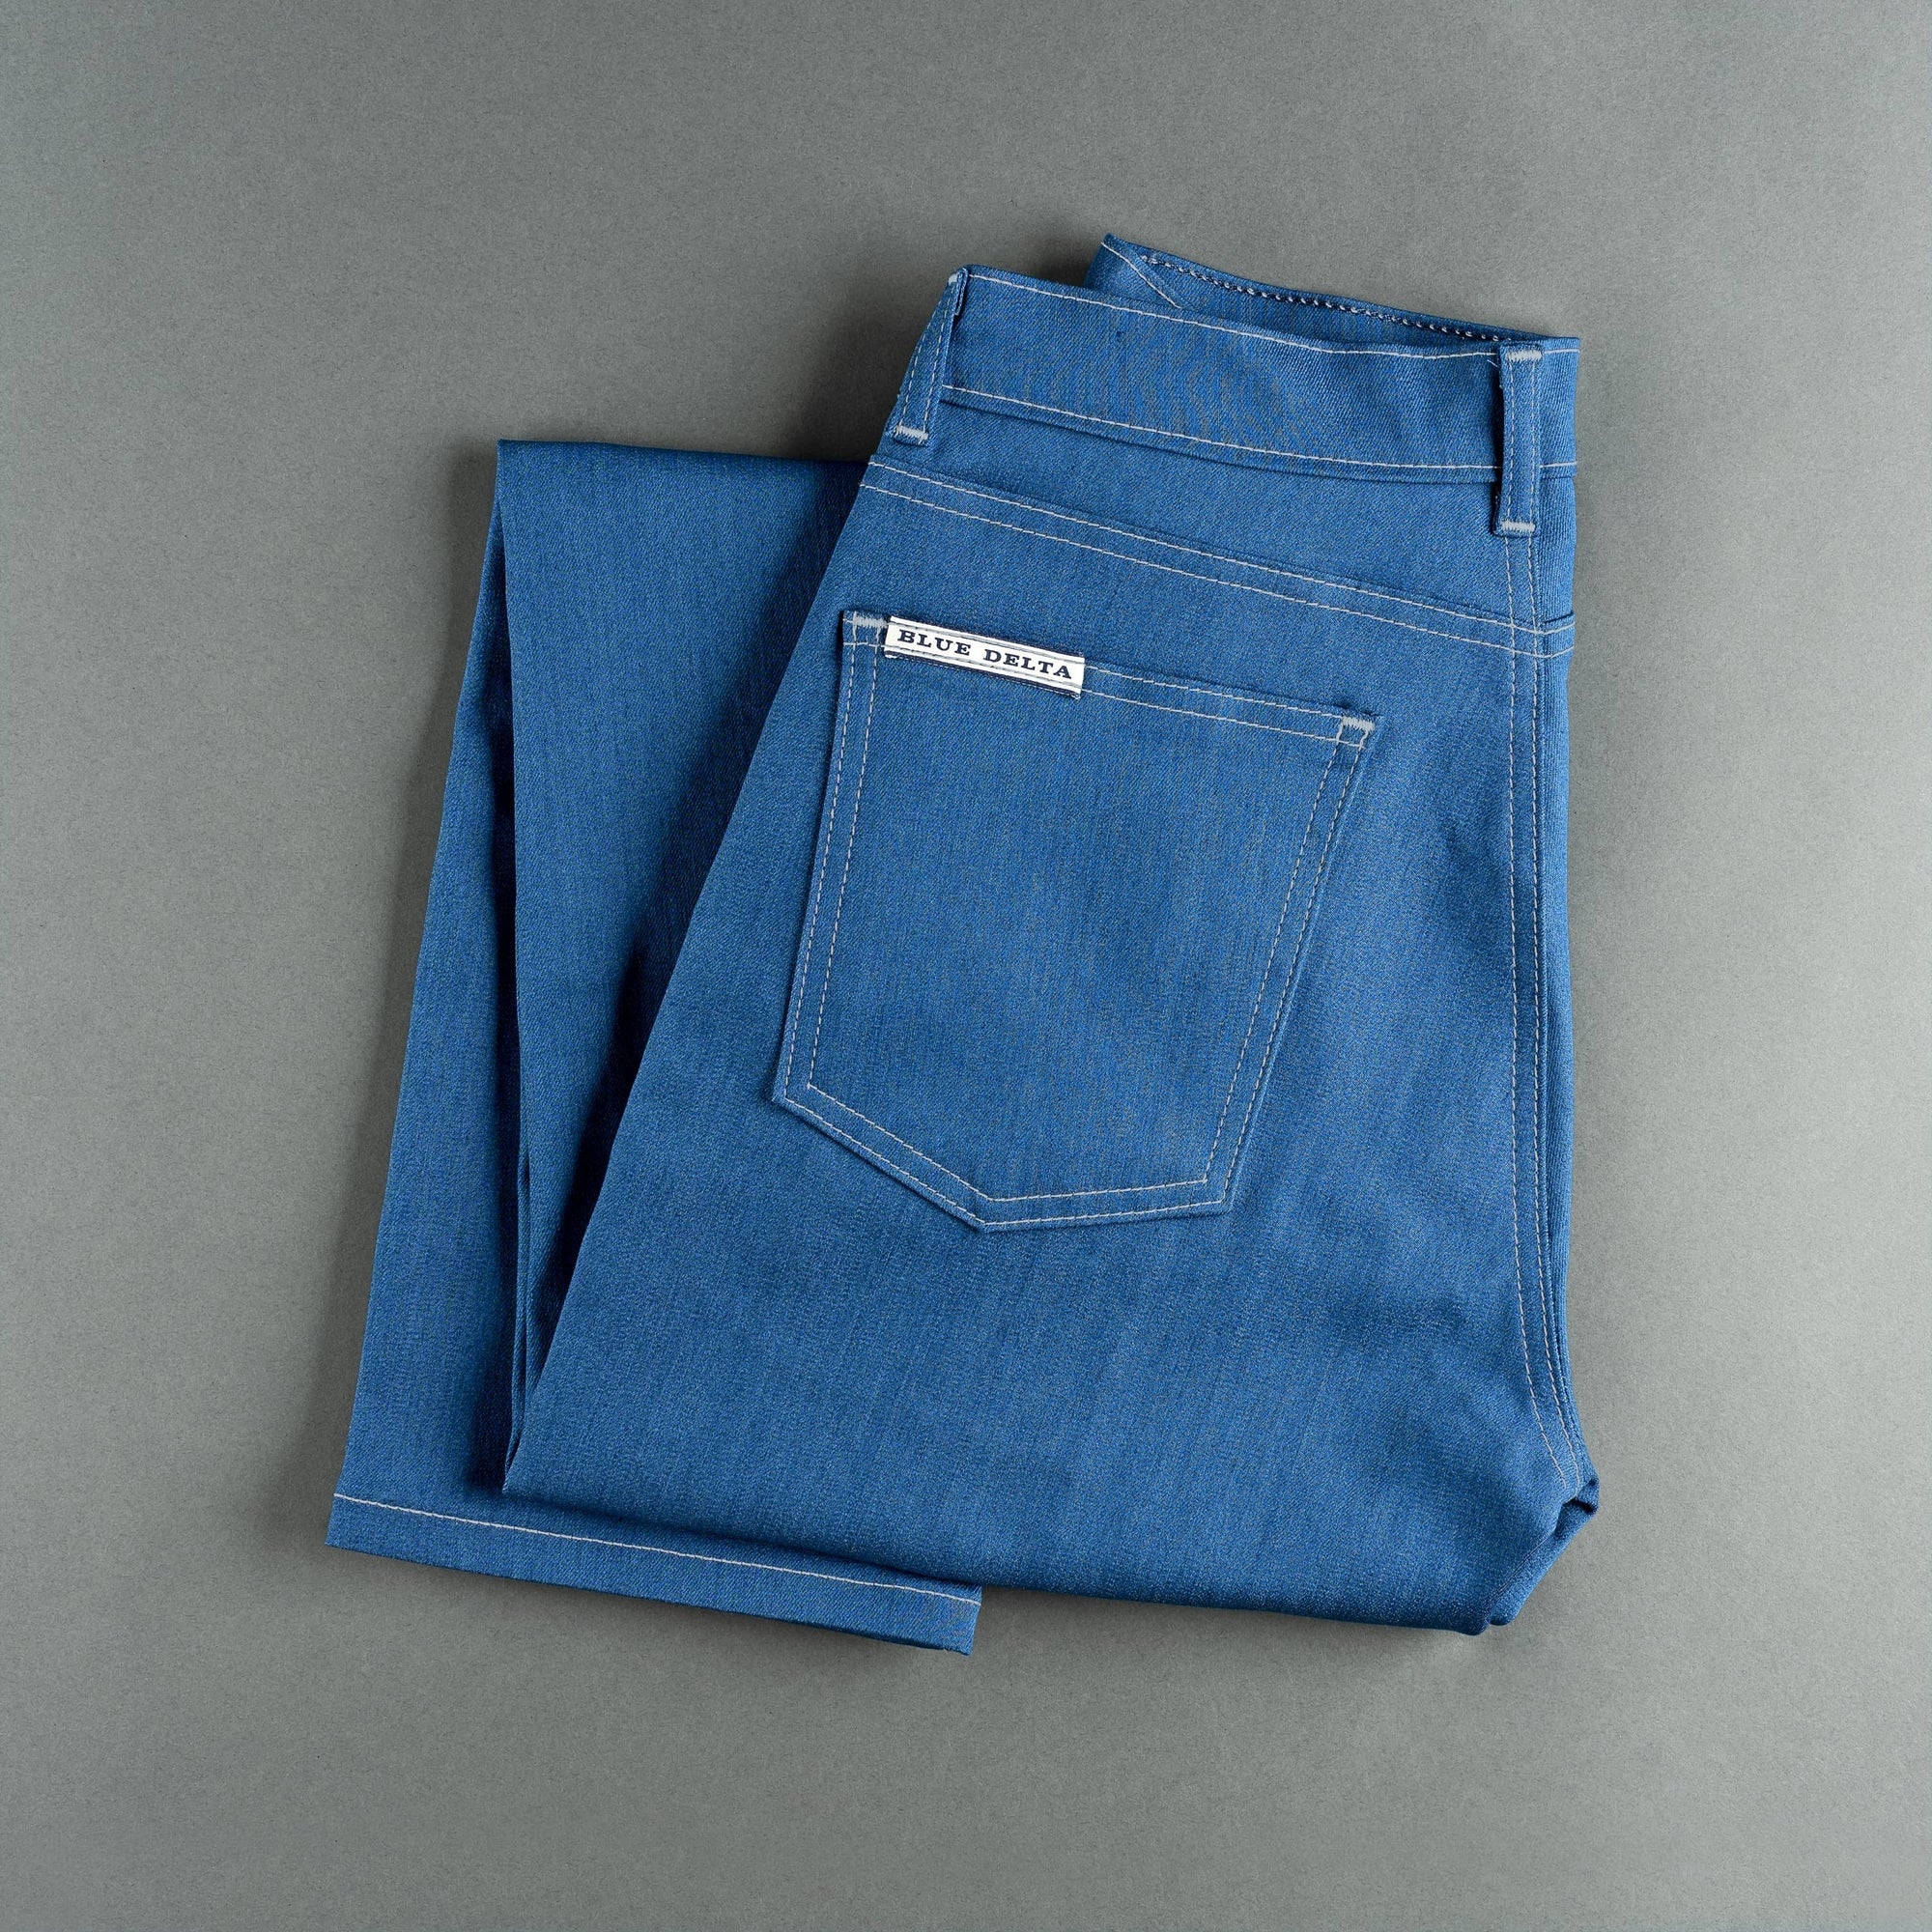 Postman Blue Denim Jeans